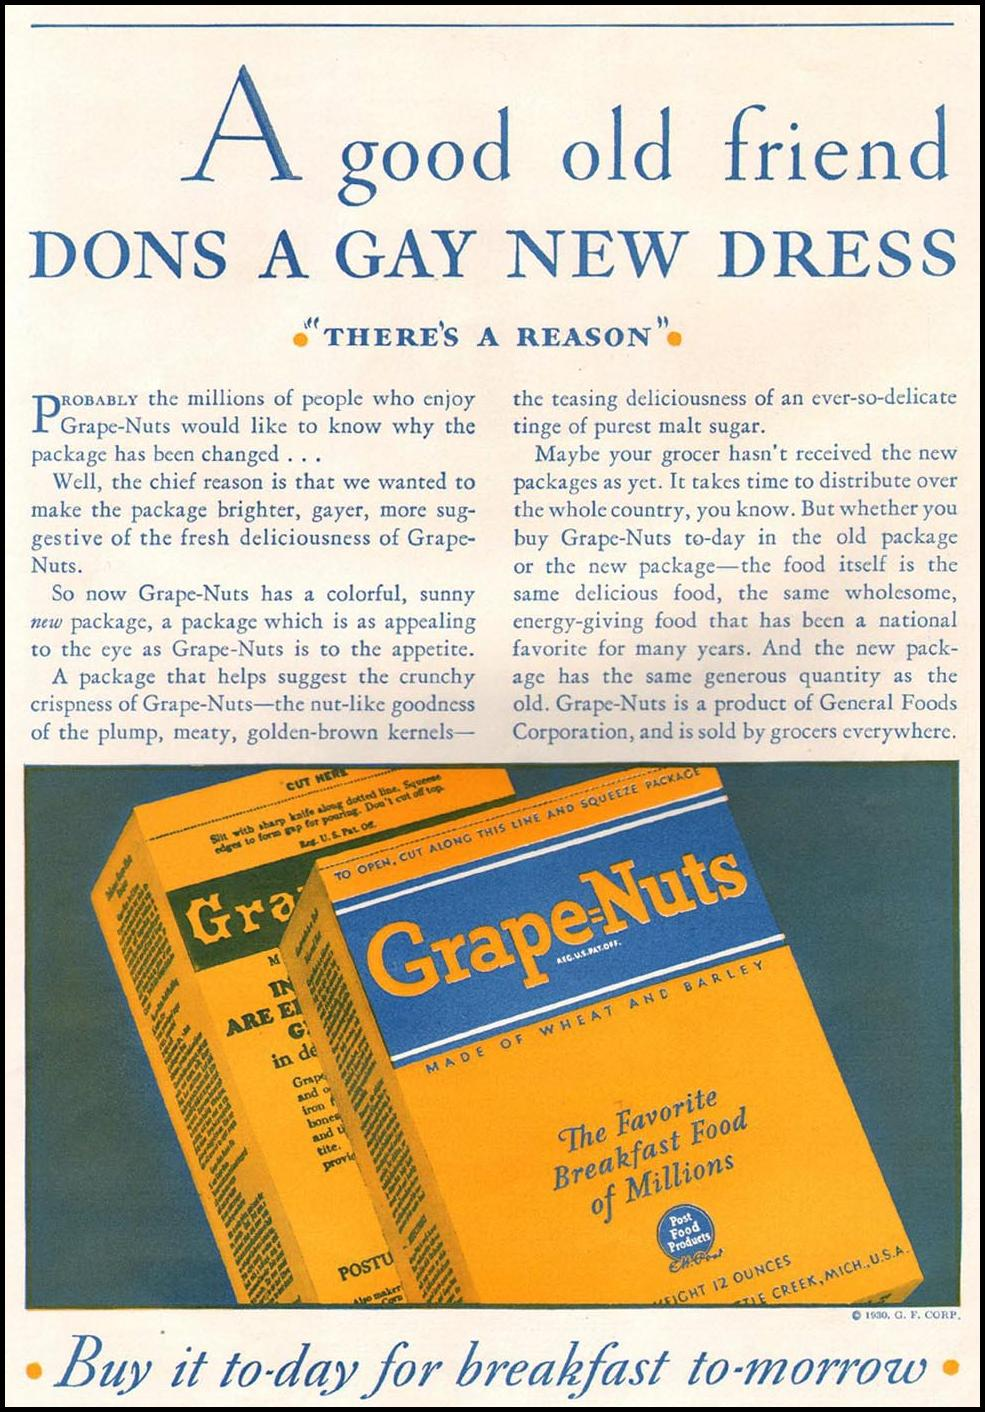 POST GRAPE NUTS CEREAL BETTER HOMES AND GARDENS 10/01/1930 p. 75